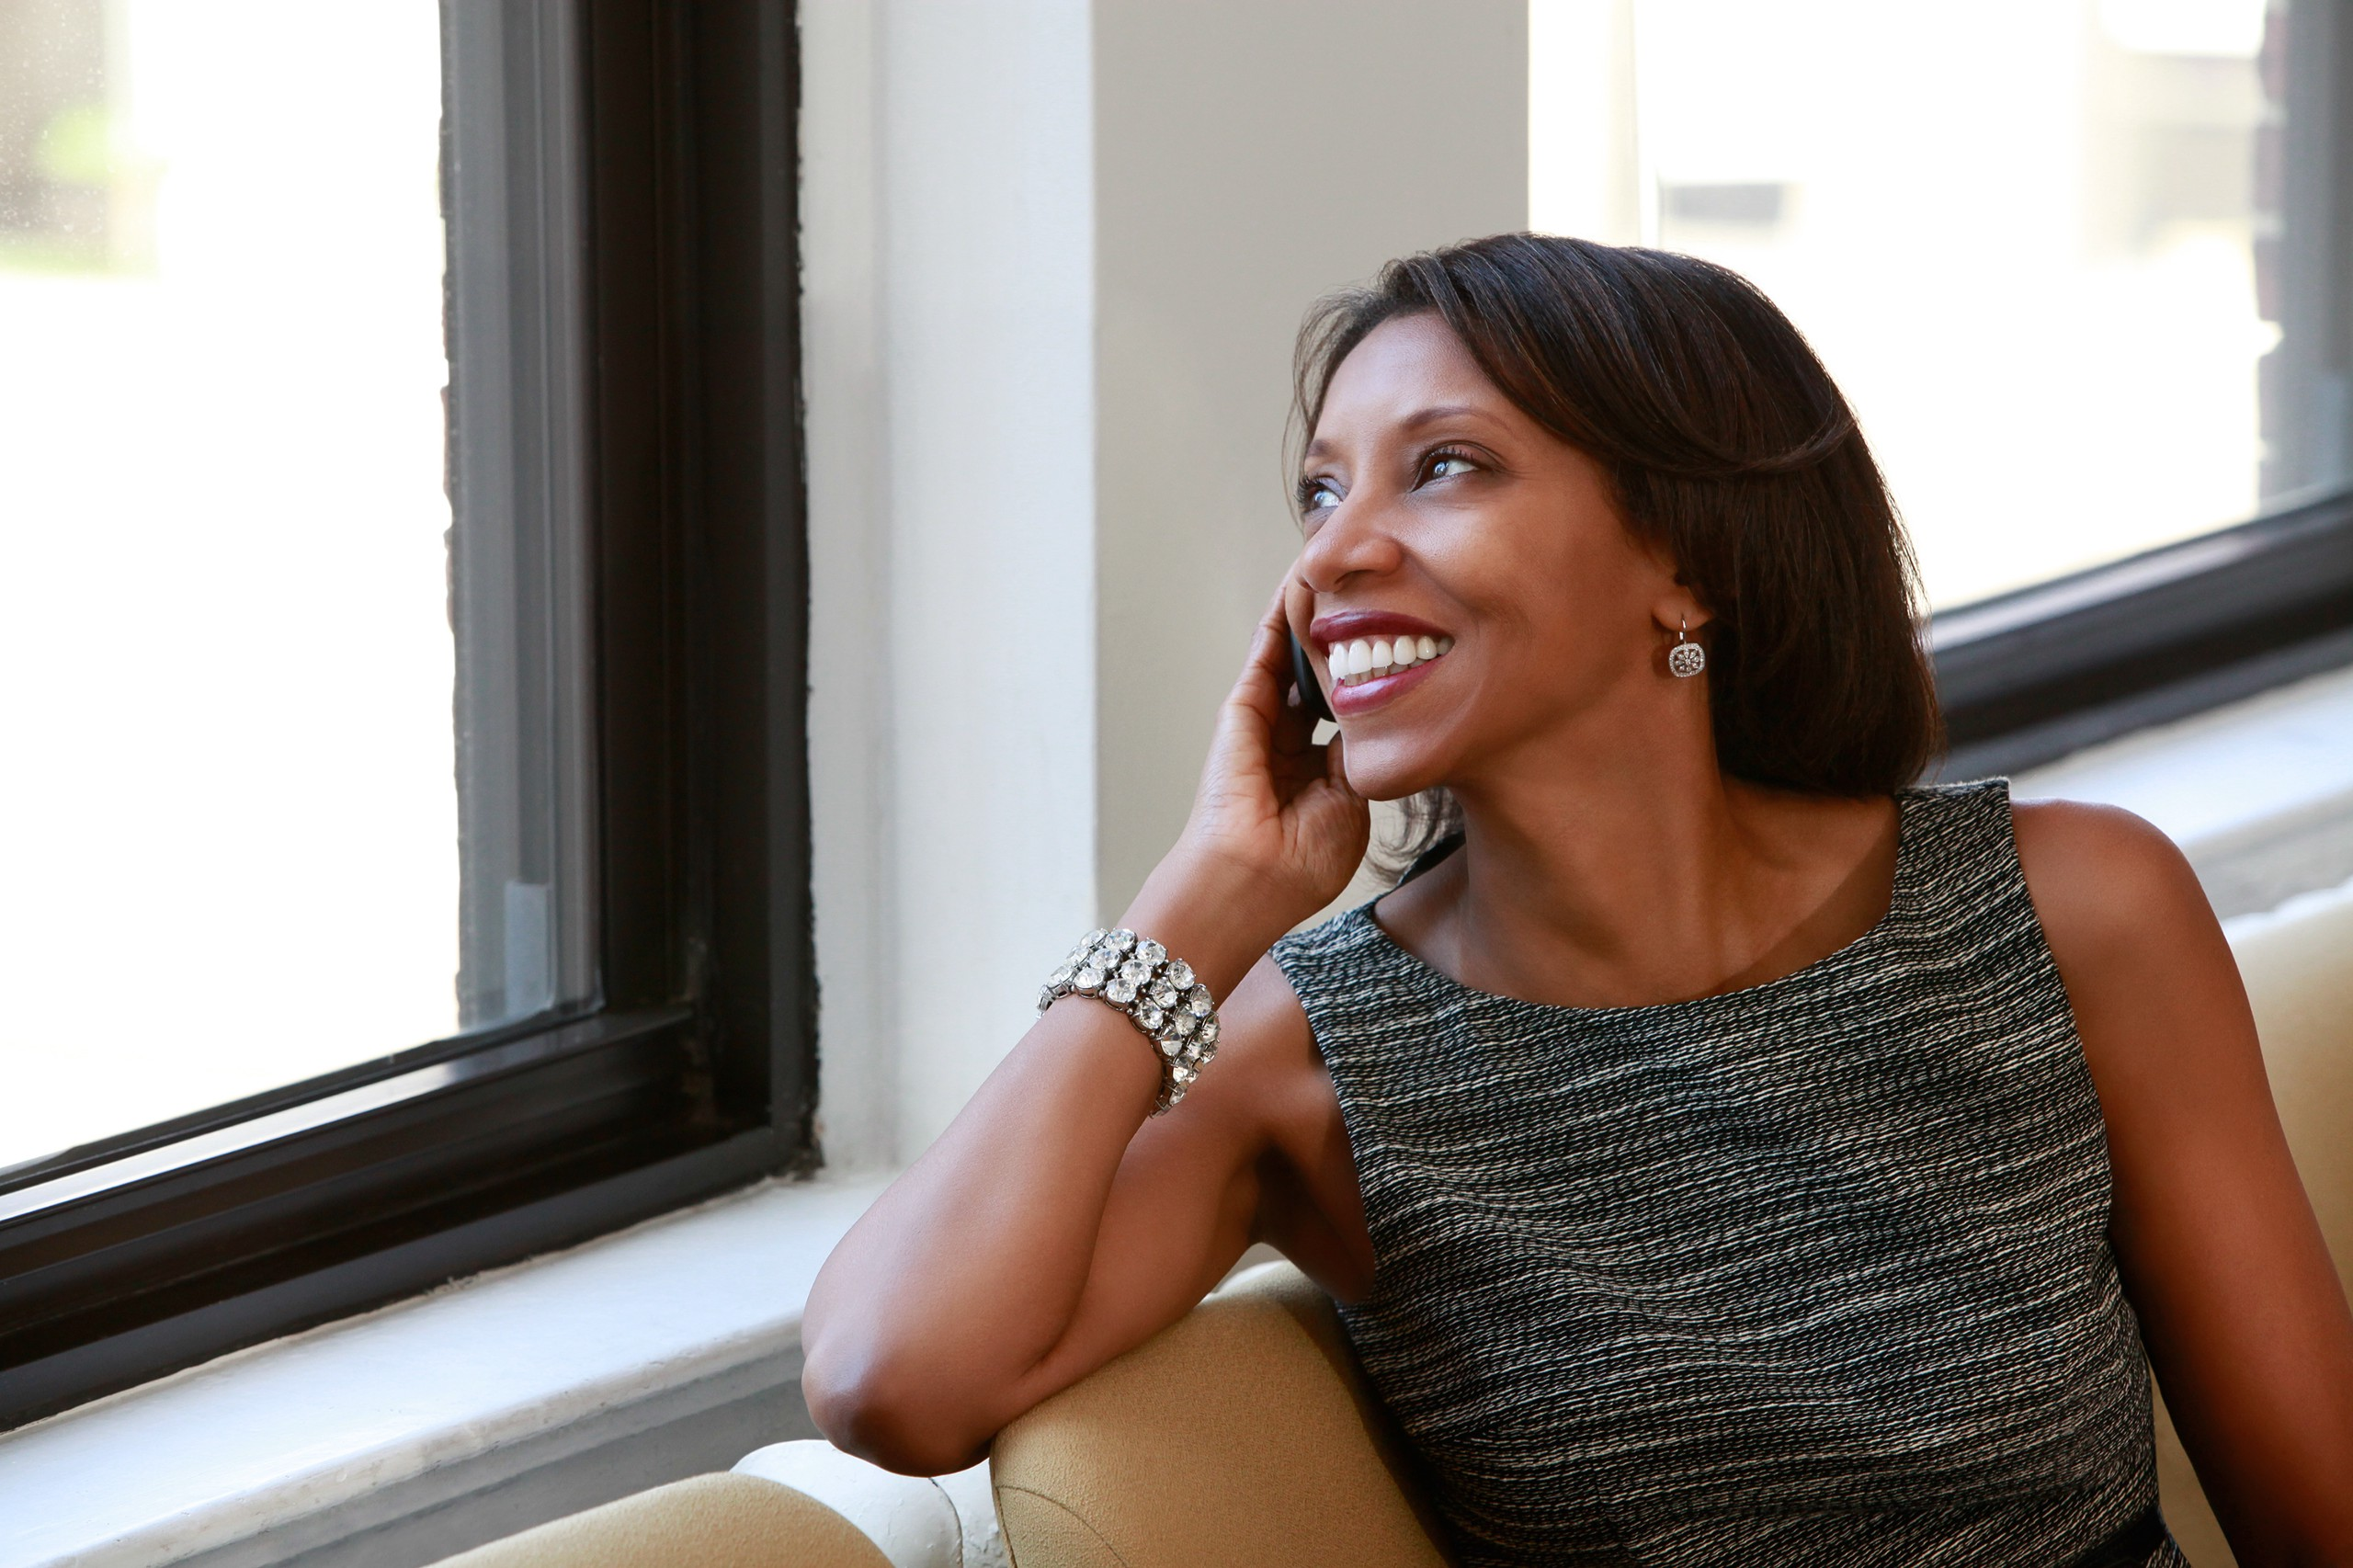 Jennefer Witter on why women should join professional